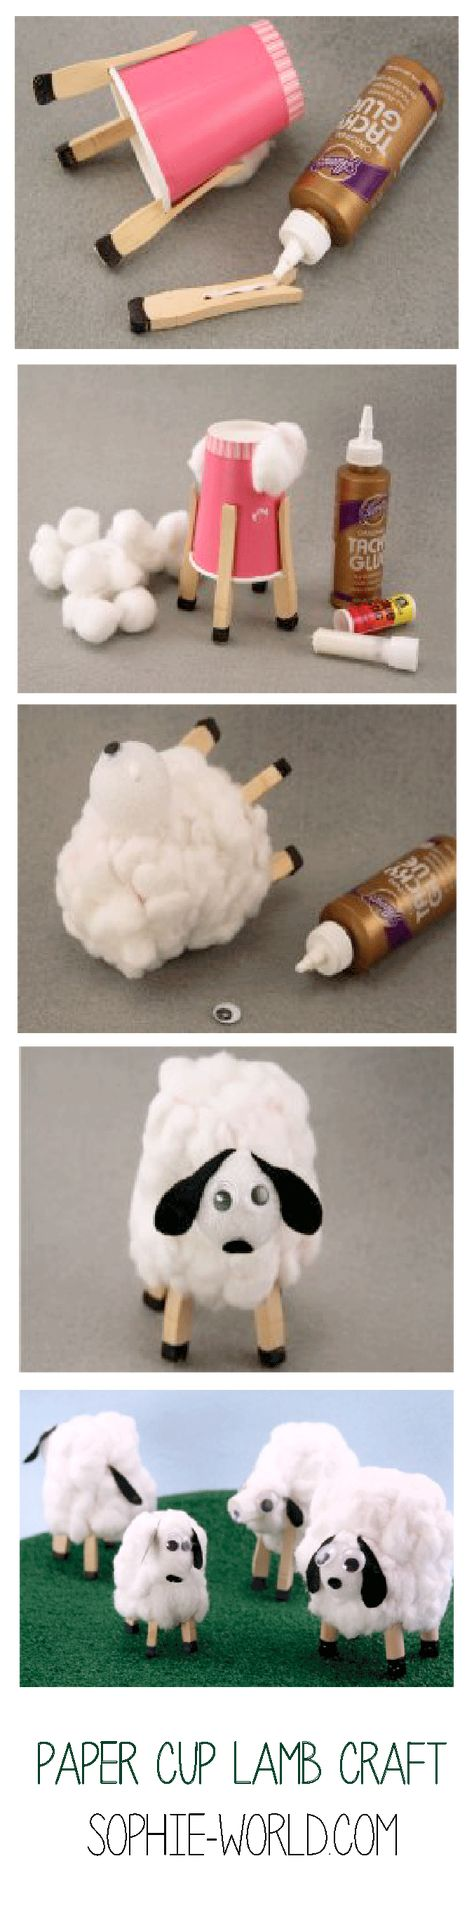 46 best the lost sheep images on pinterest sheep crafts bible